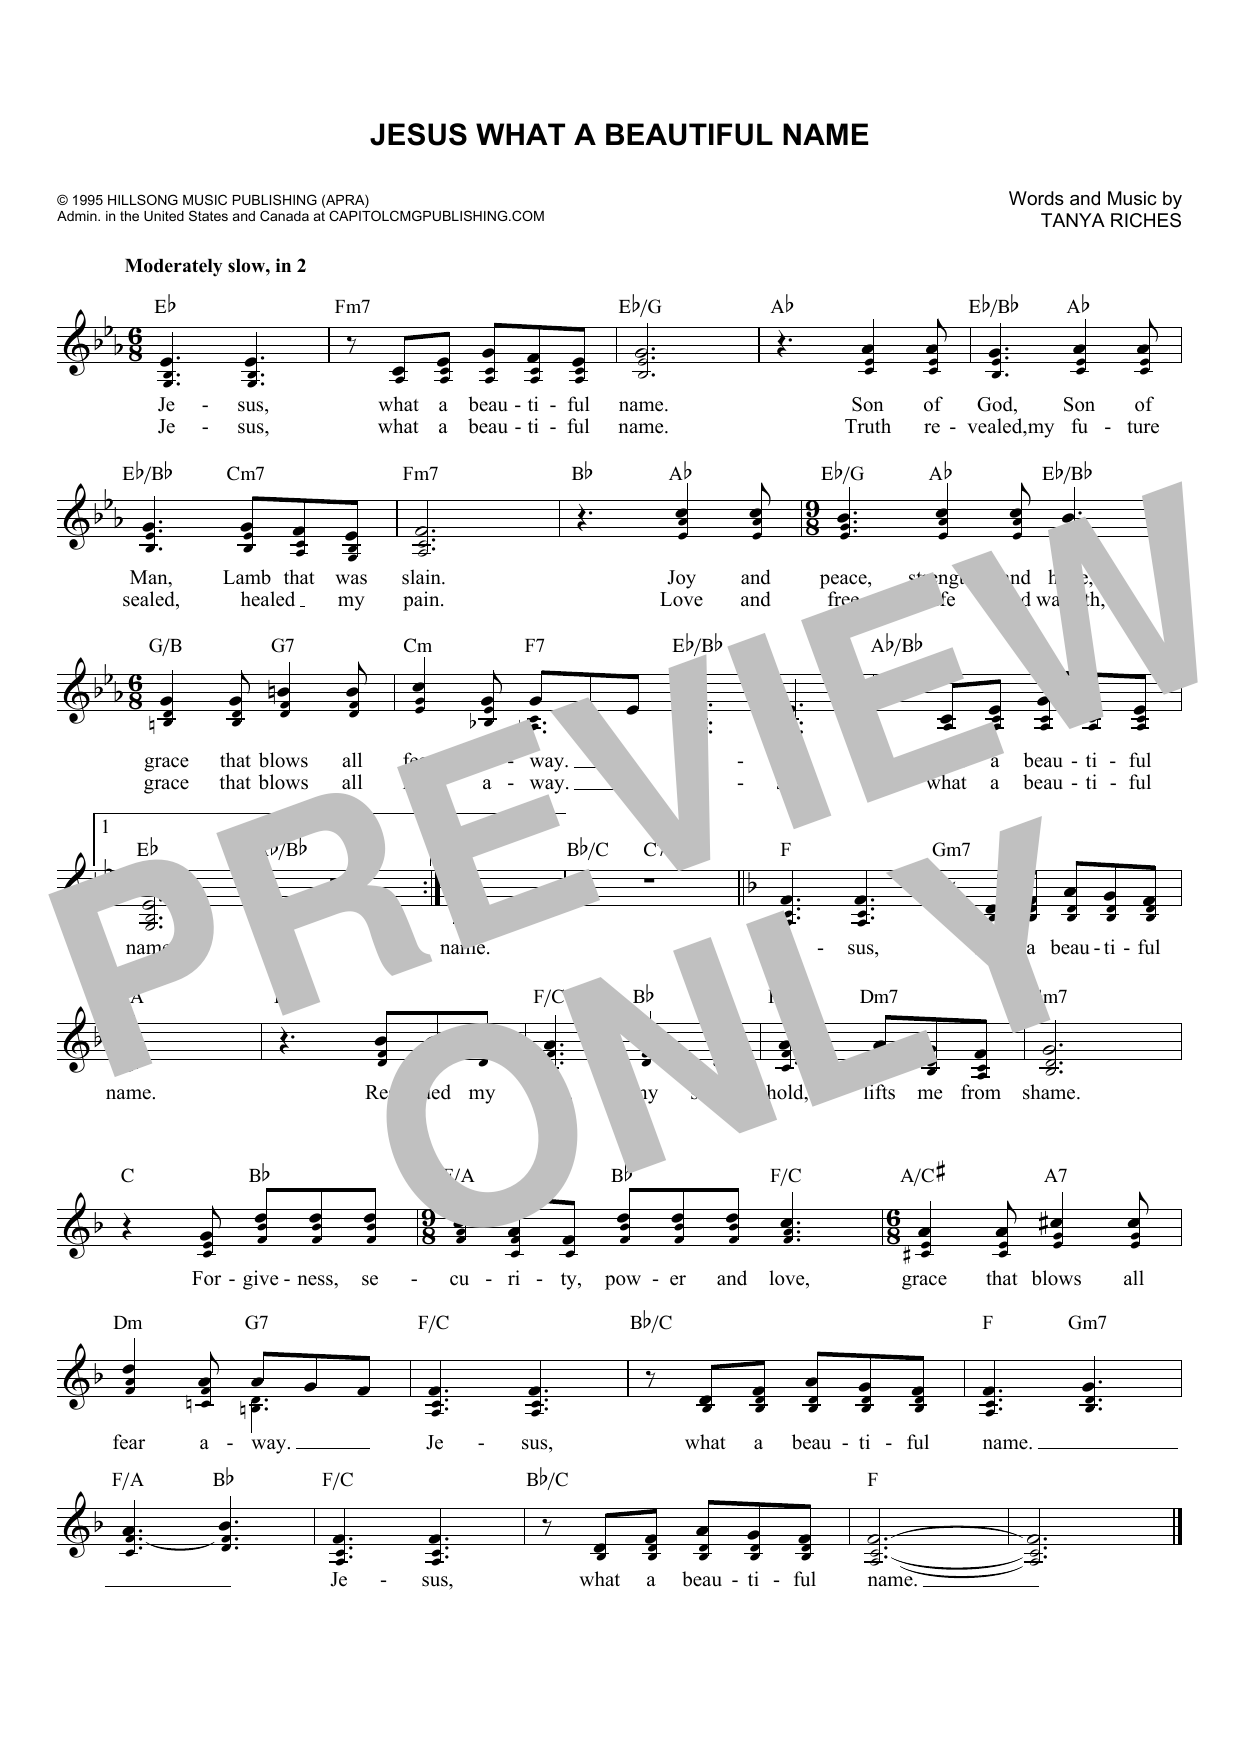 Tanya Riches 'Jesus What A Beautiful Name' Sheet Music Notes, Chords |  Download Printable Lead Sheet / Fake Book - SKU: 179561